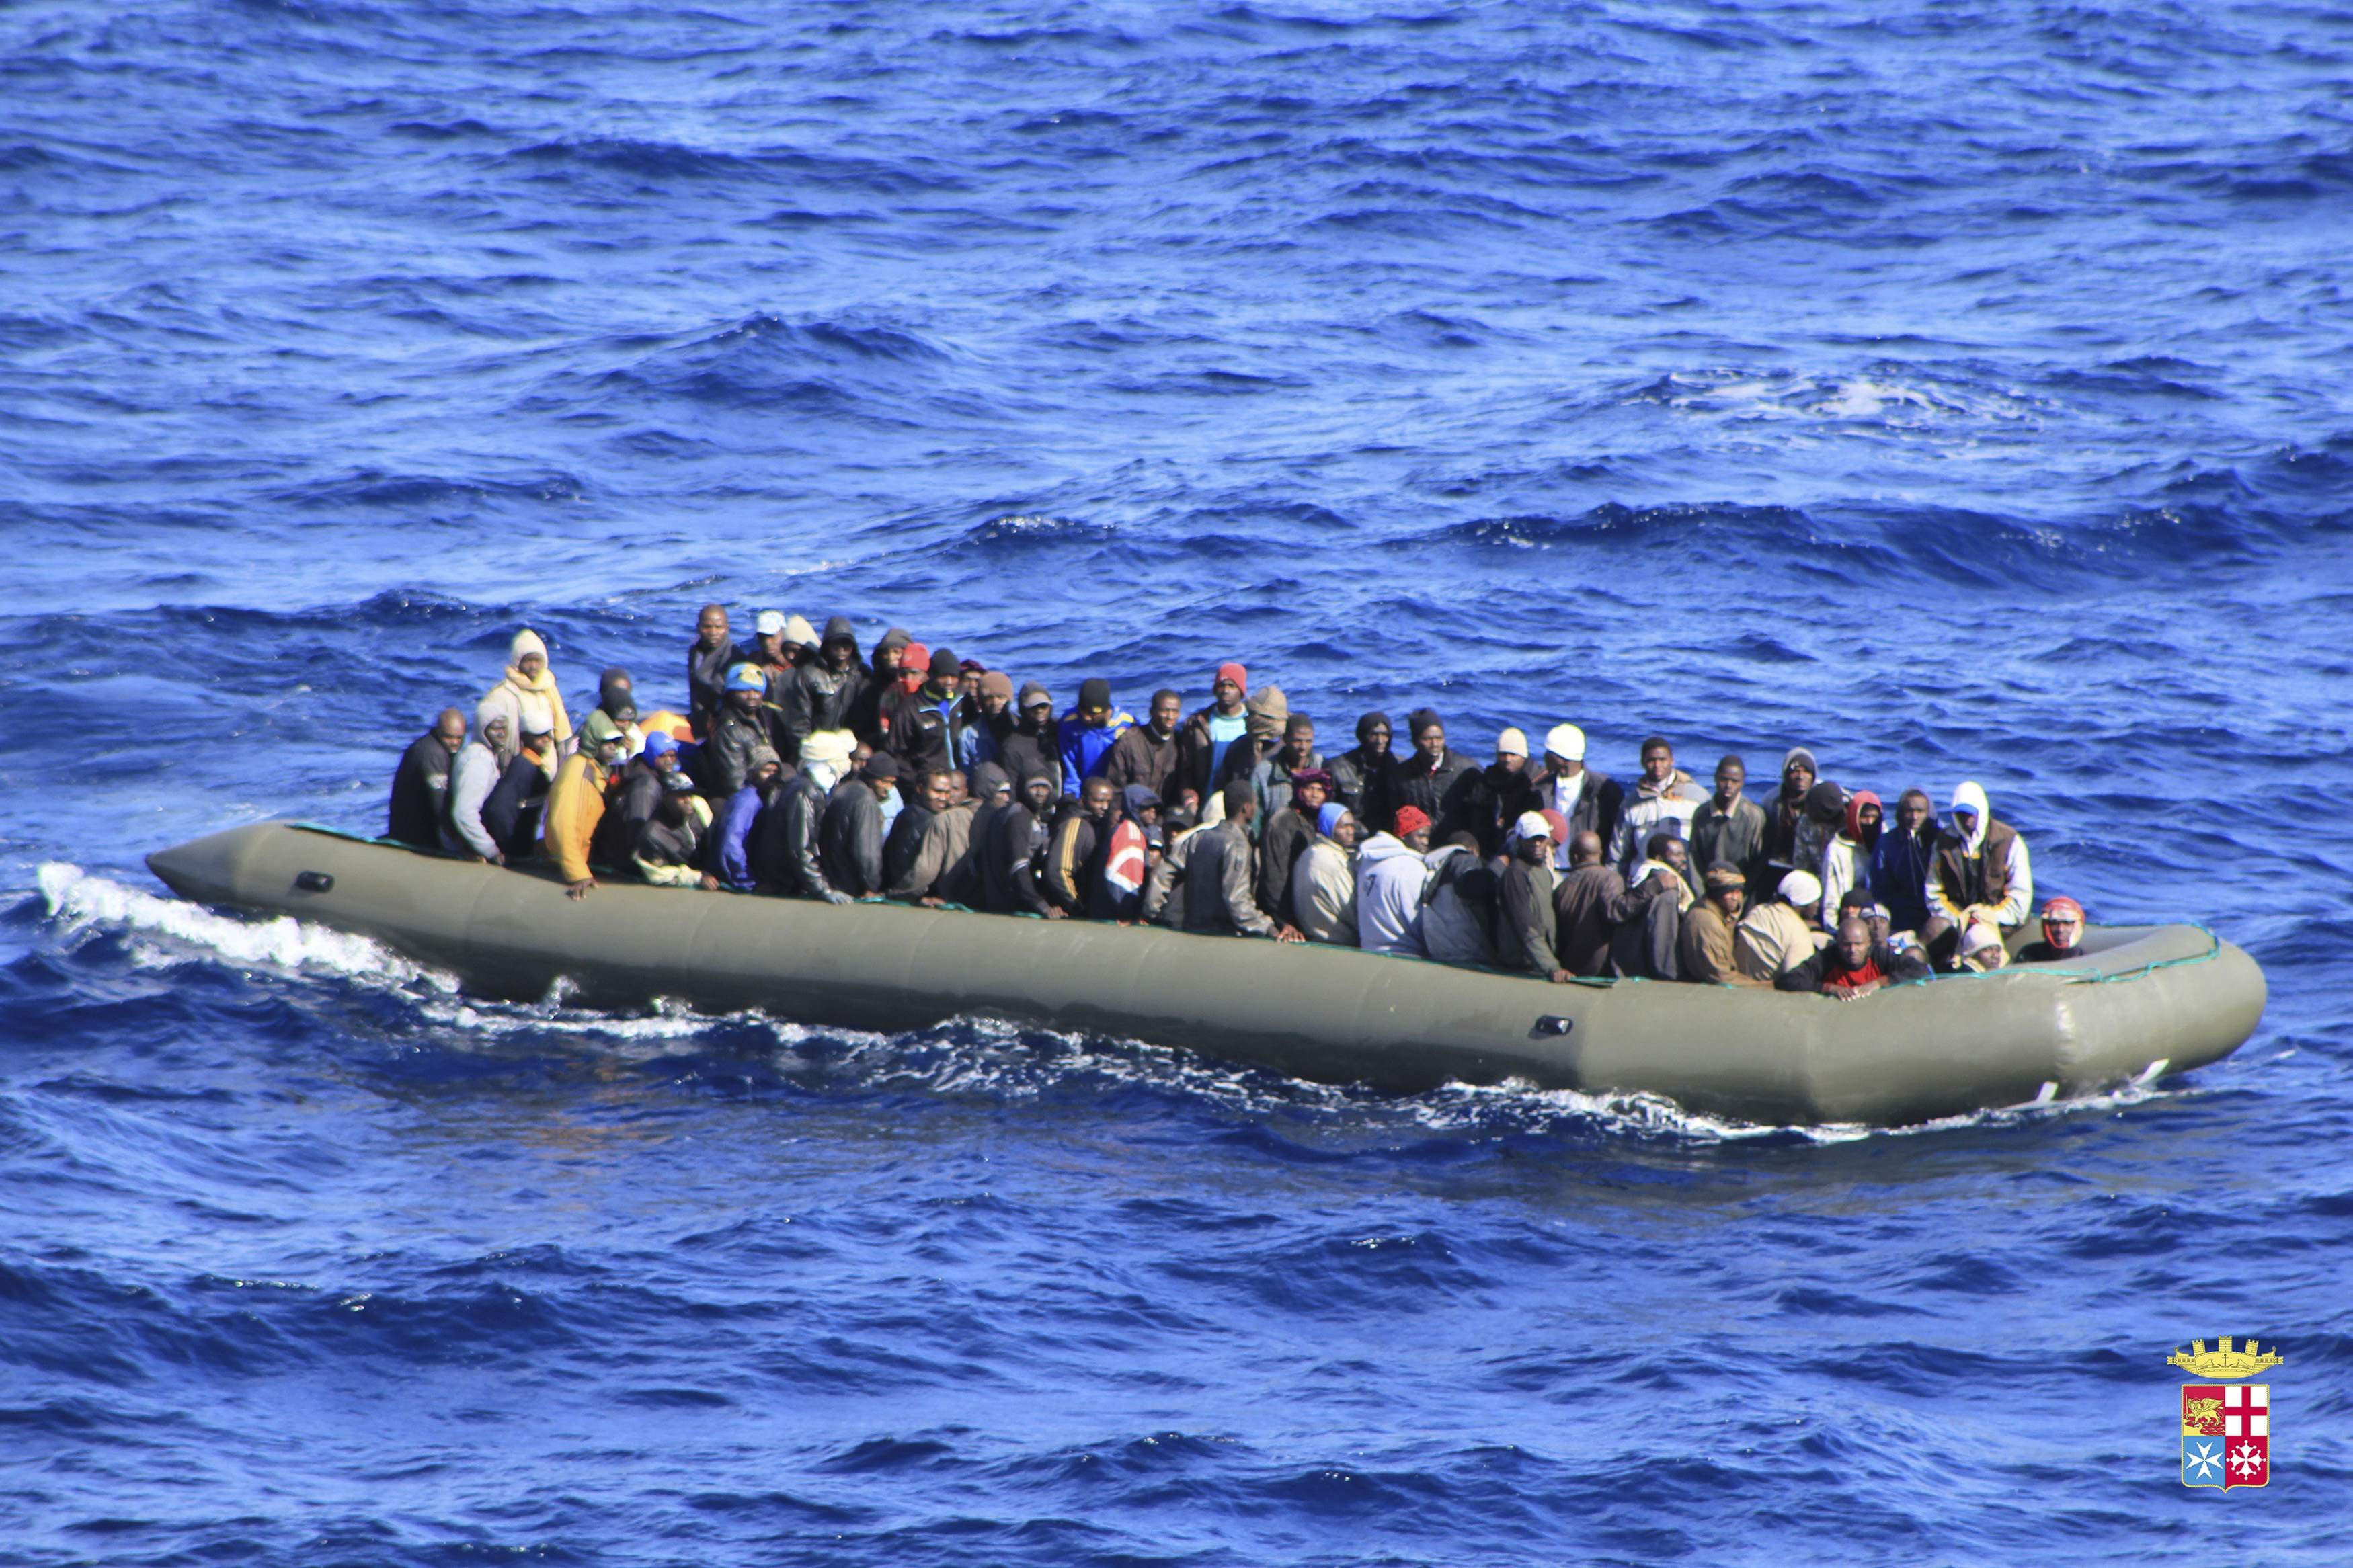 More Migrant Deaths In Latest Lampedusa Shipwreck Enca